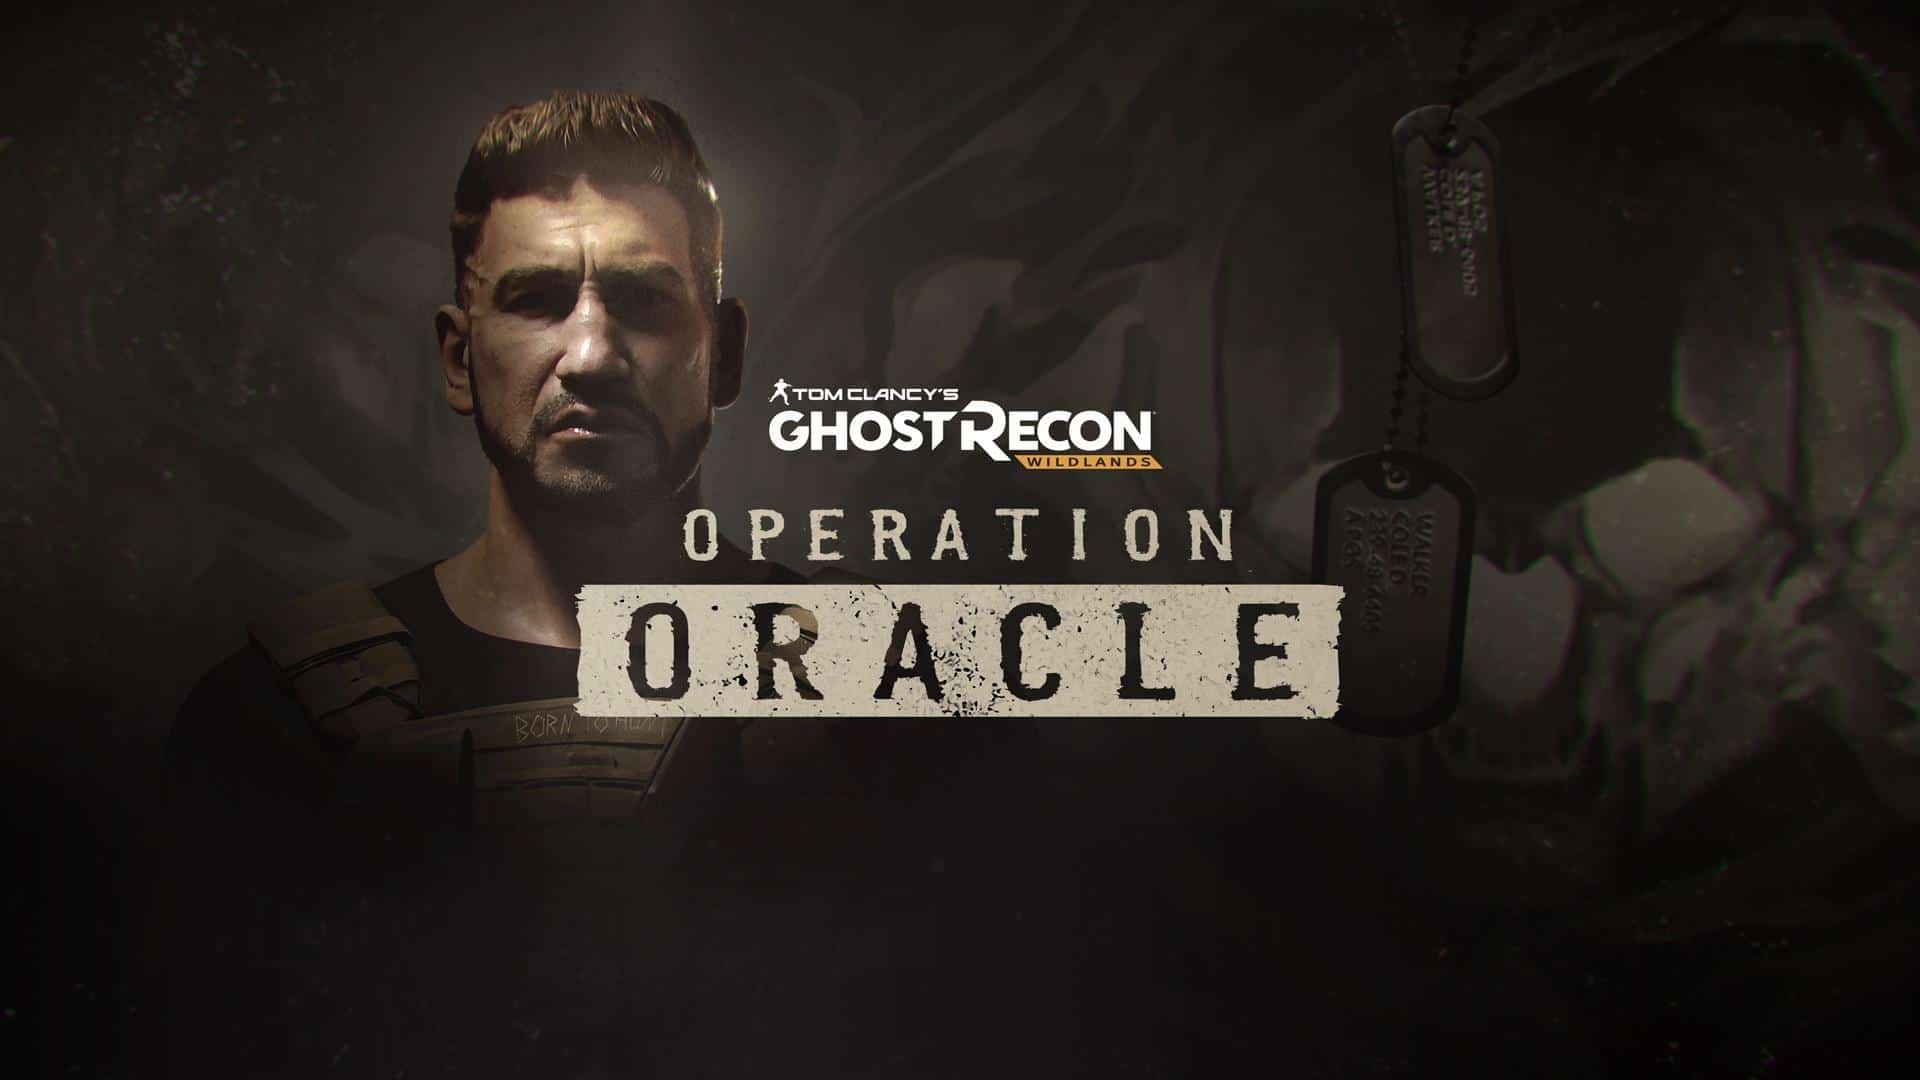 """Tom Clancy's Ghost Recon Wildlands Announces New Story Content """"Operation Oracle"""" Coming May 2"""